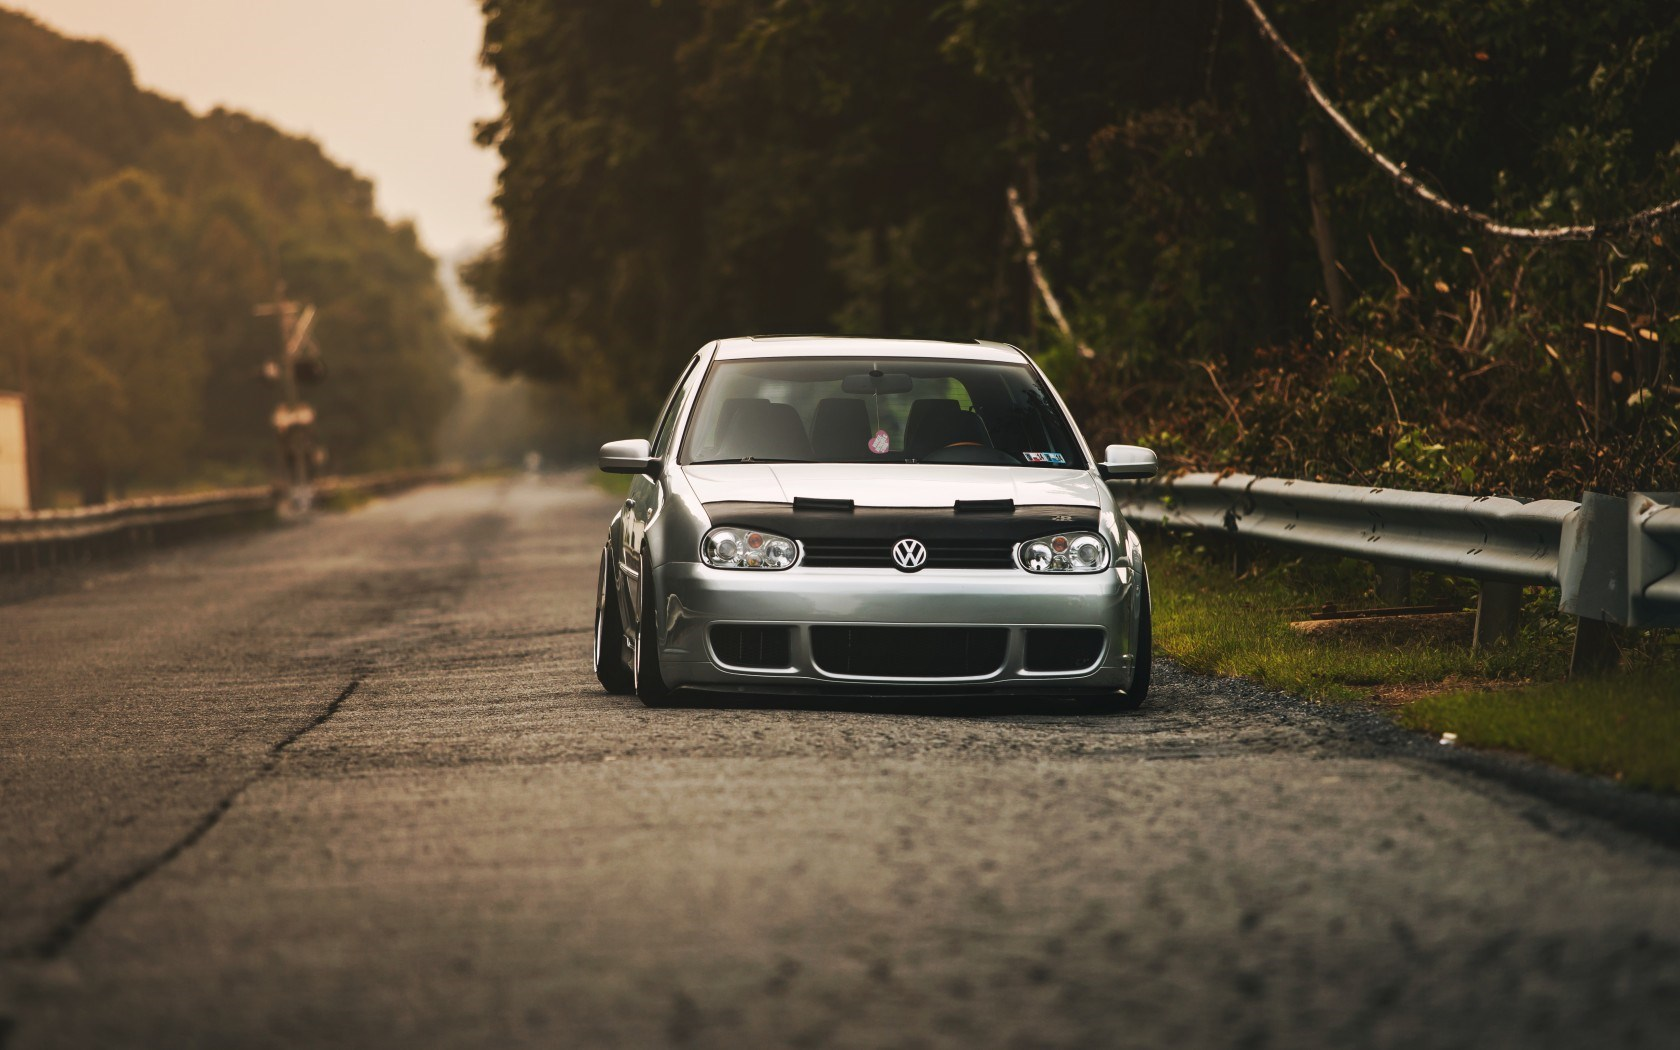 Silver Volkswagen Golf Wallpaper 43728 1680x1050 px ...